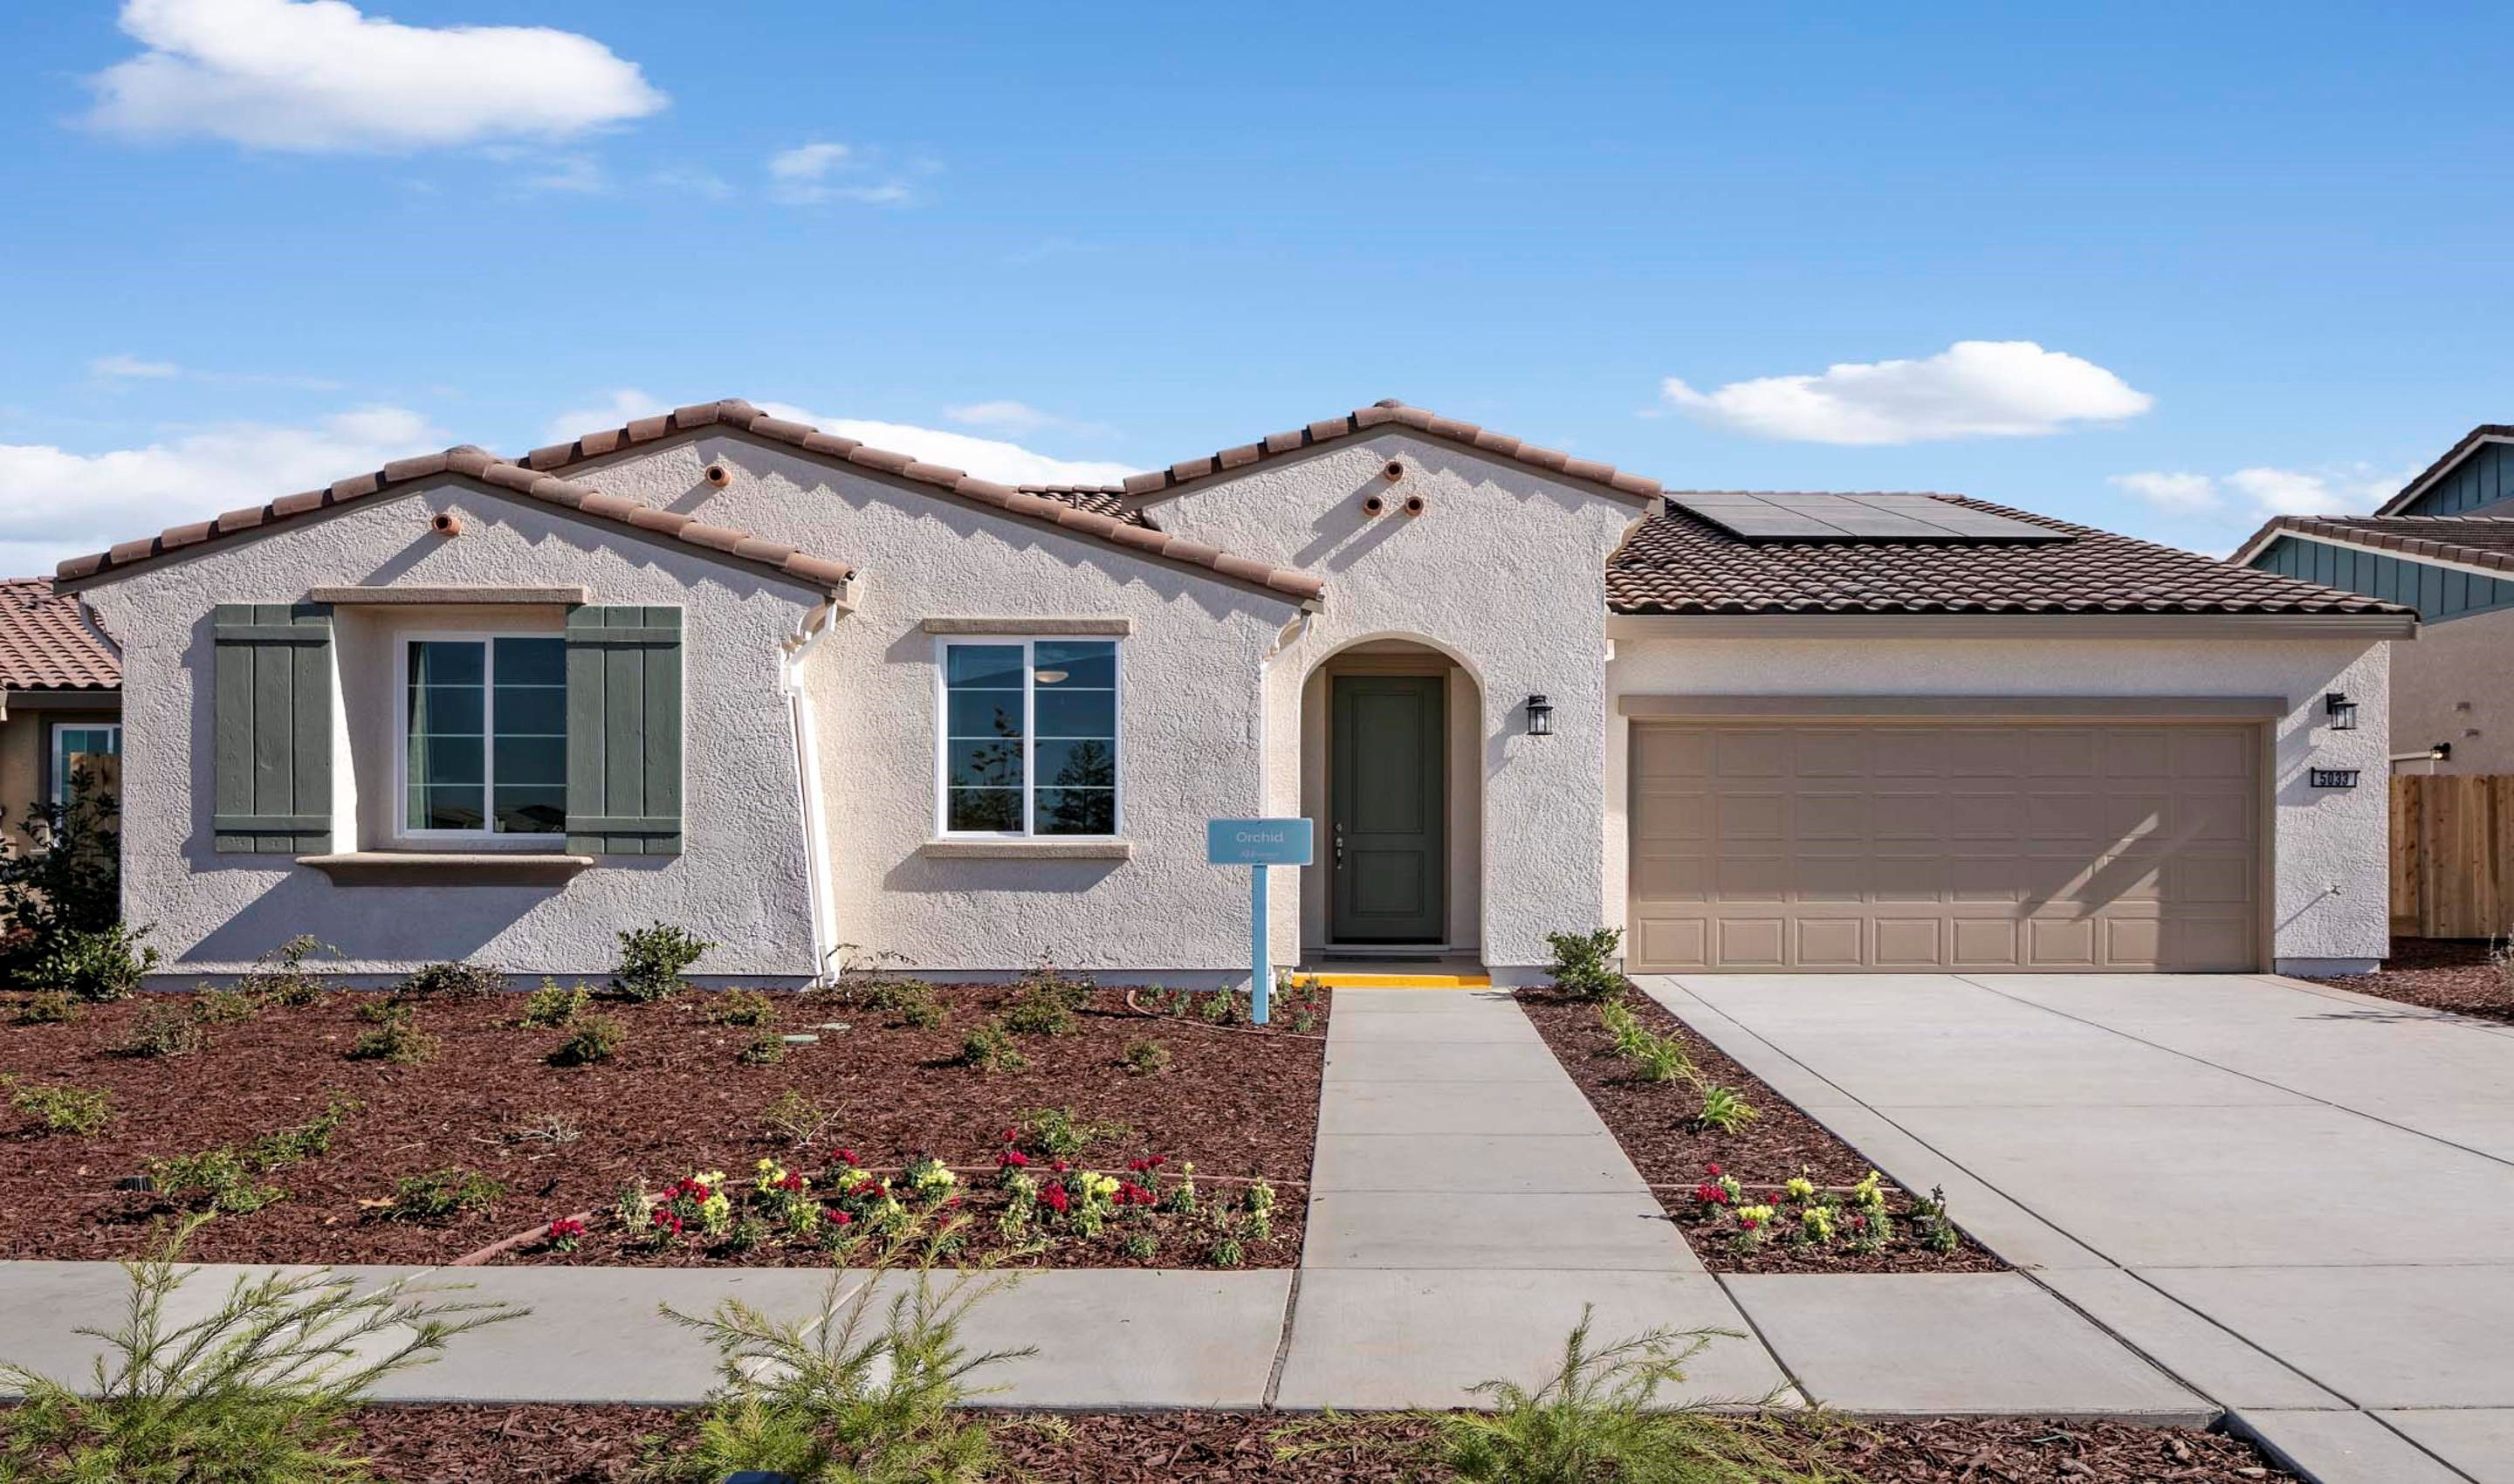 Single Family for Active at Ginger 3084 Palomino Way Hollister, California 95023 United States